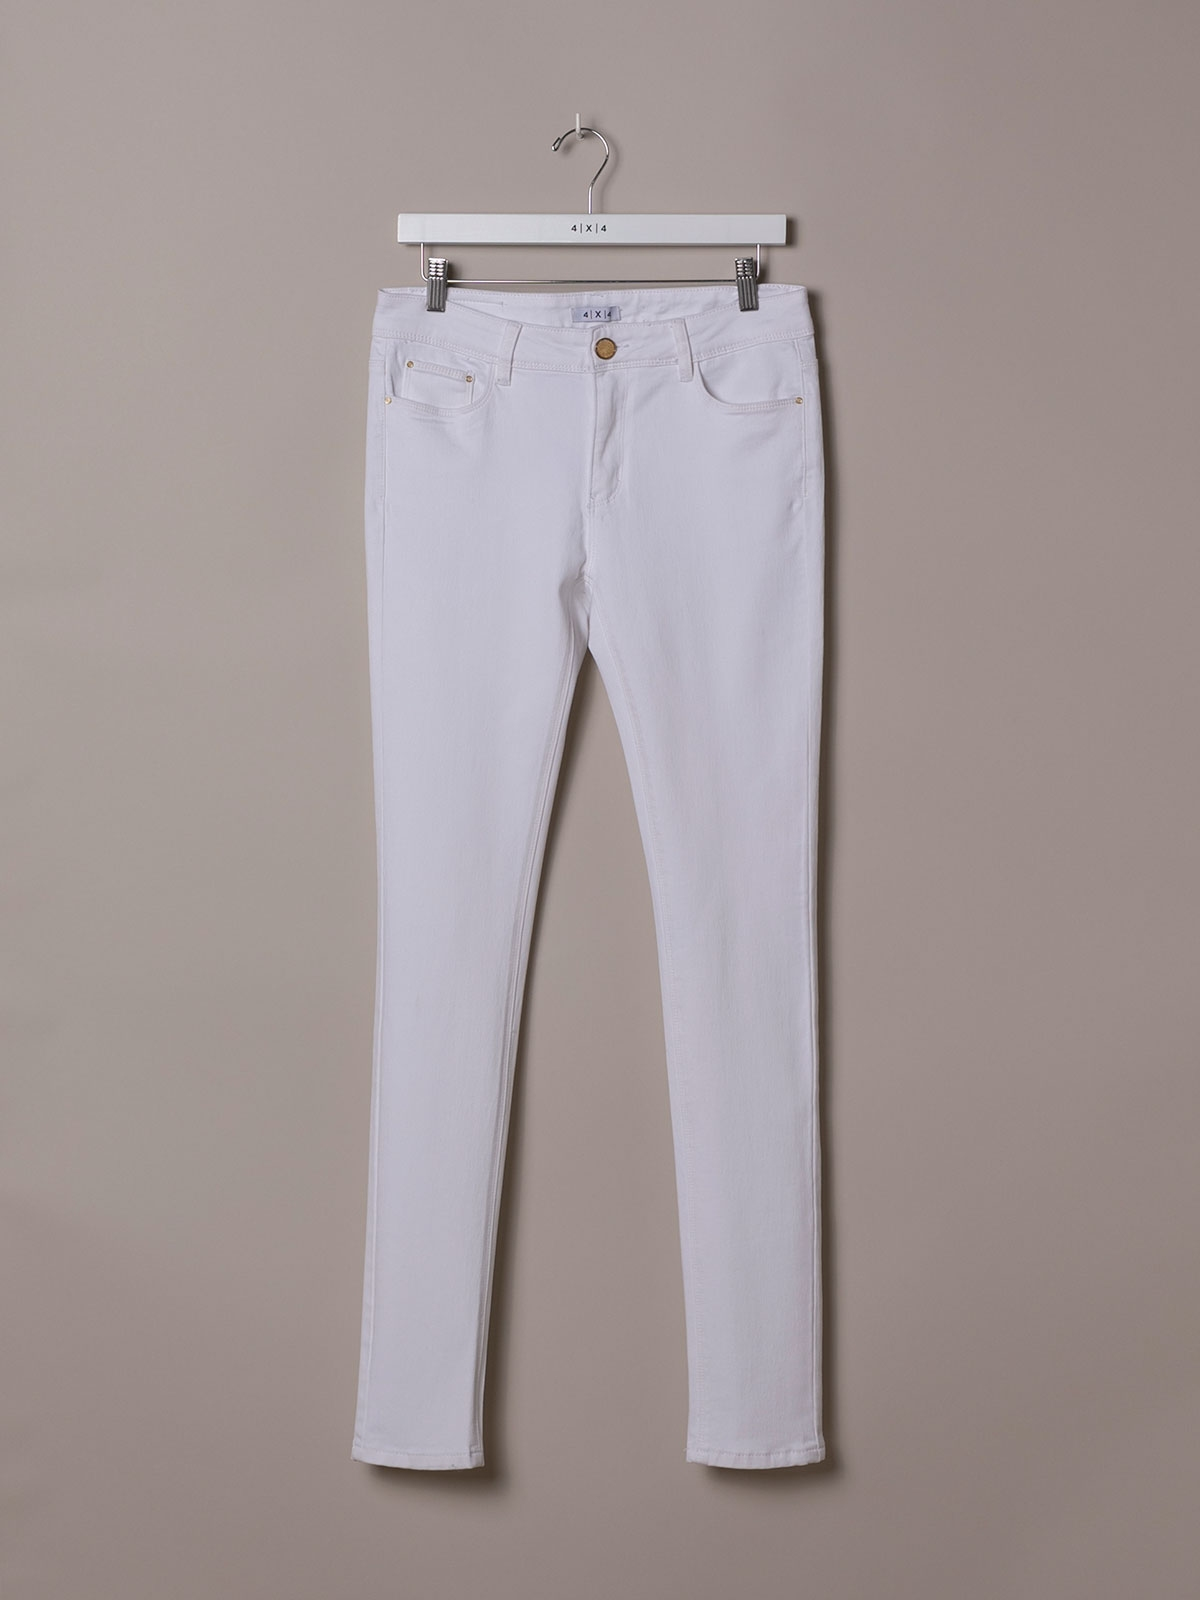 Woman Elastic 5 pocket pants White